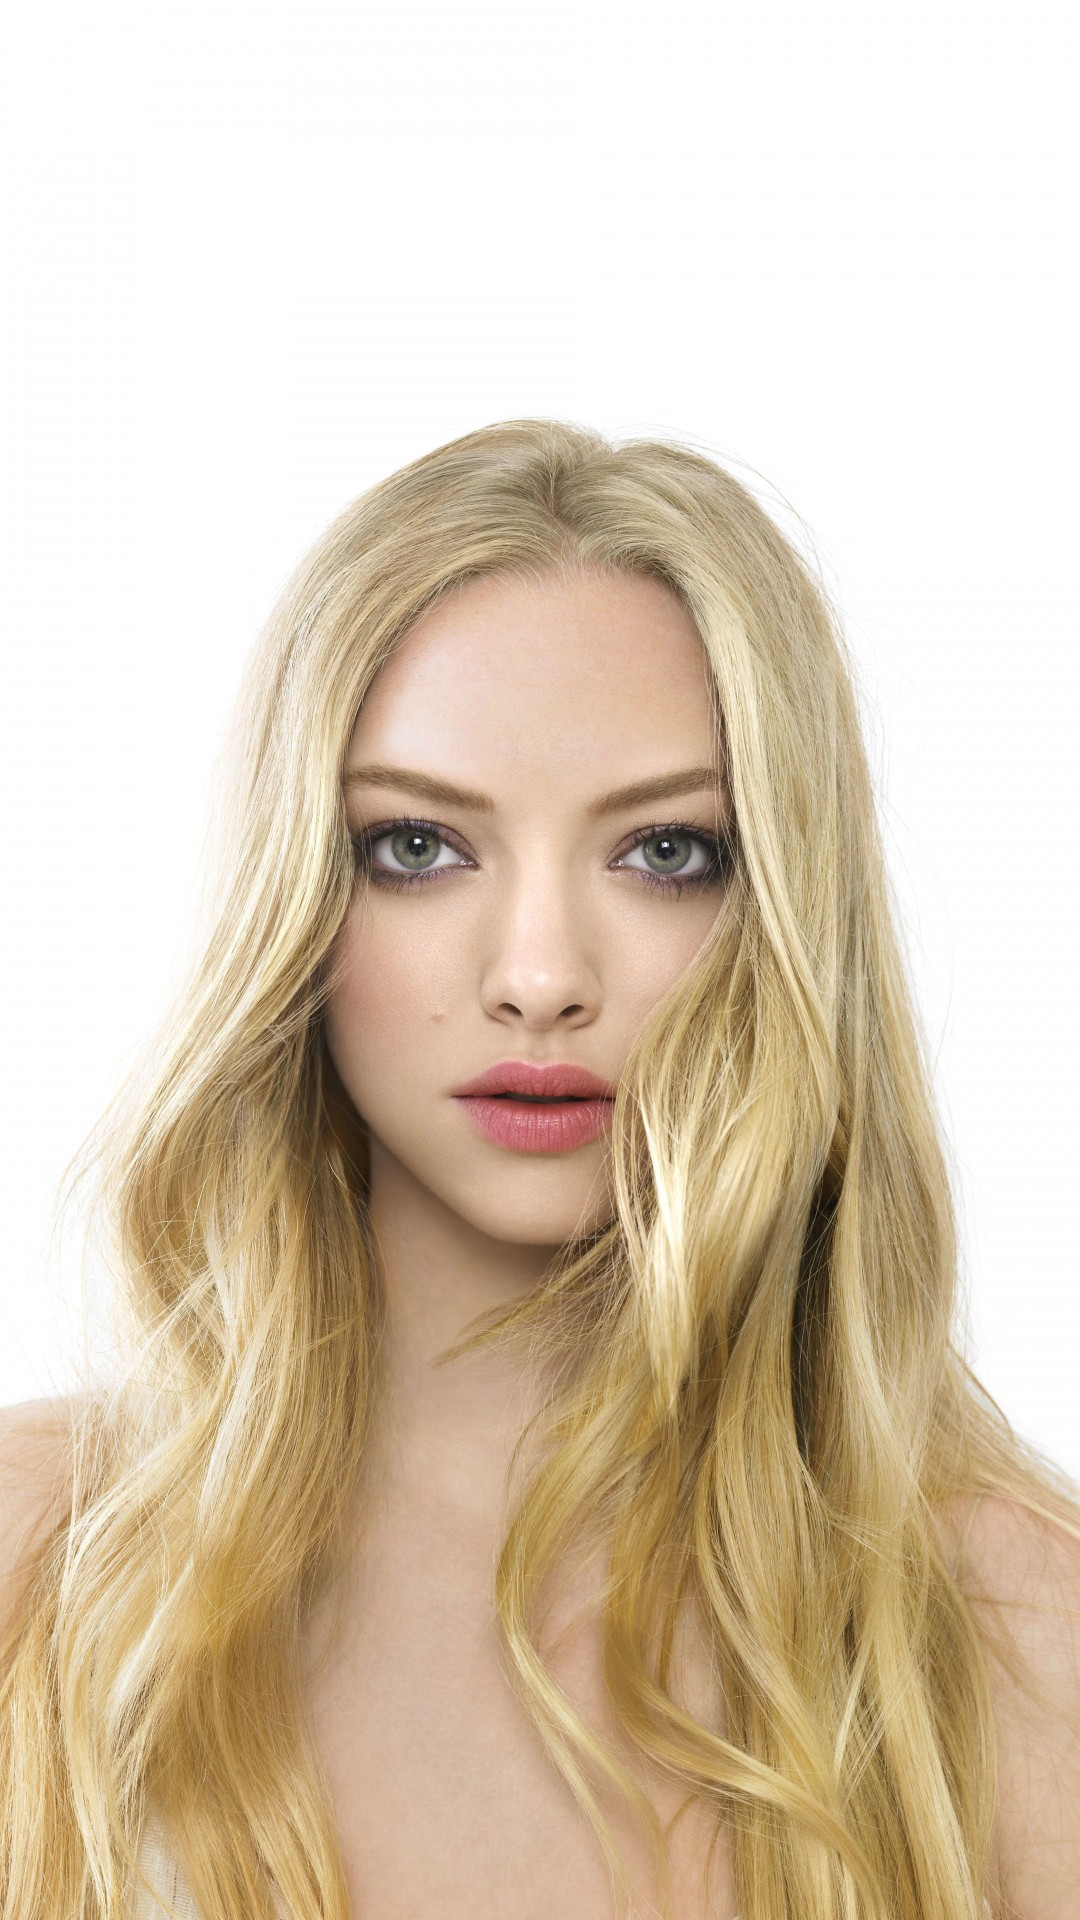 Amanda Seyfried Portrait Wallpaper for Google Nexus 5X